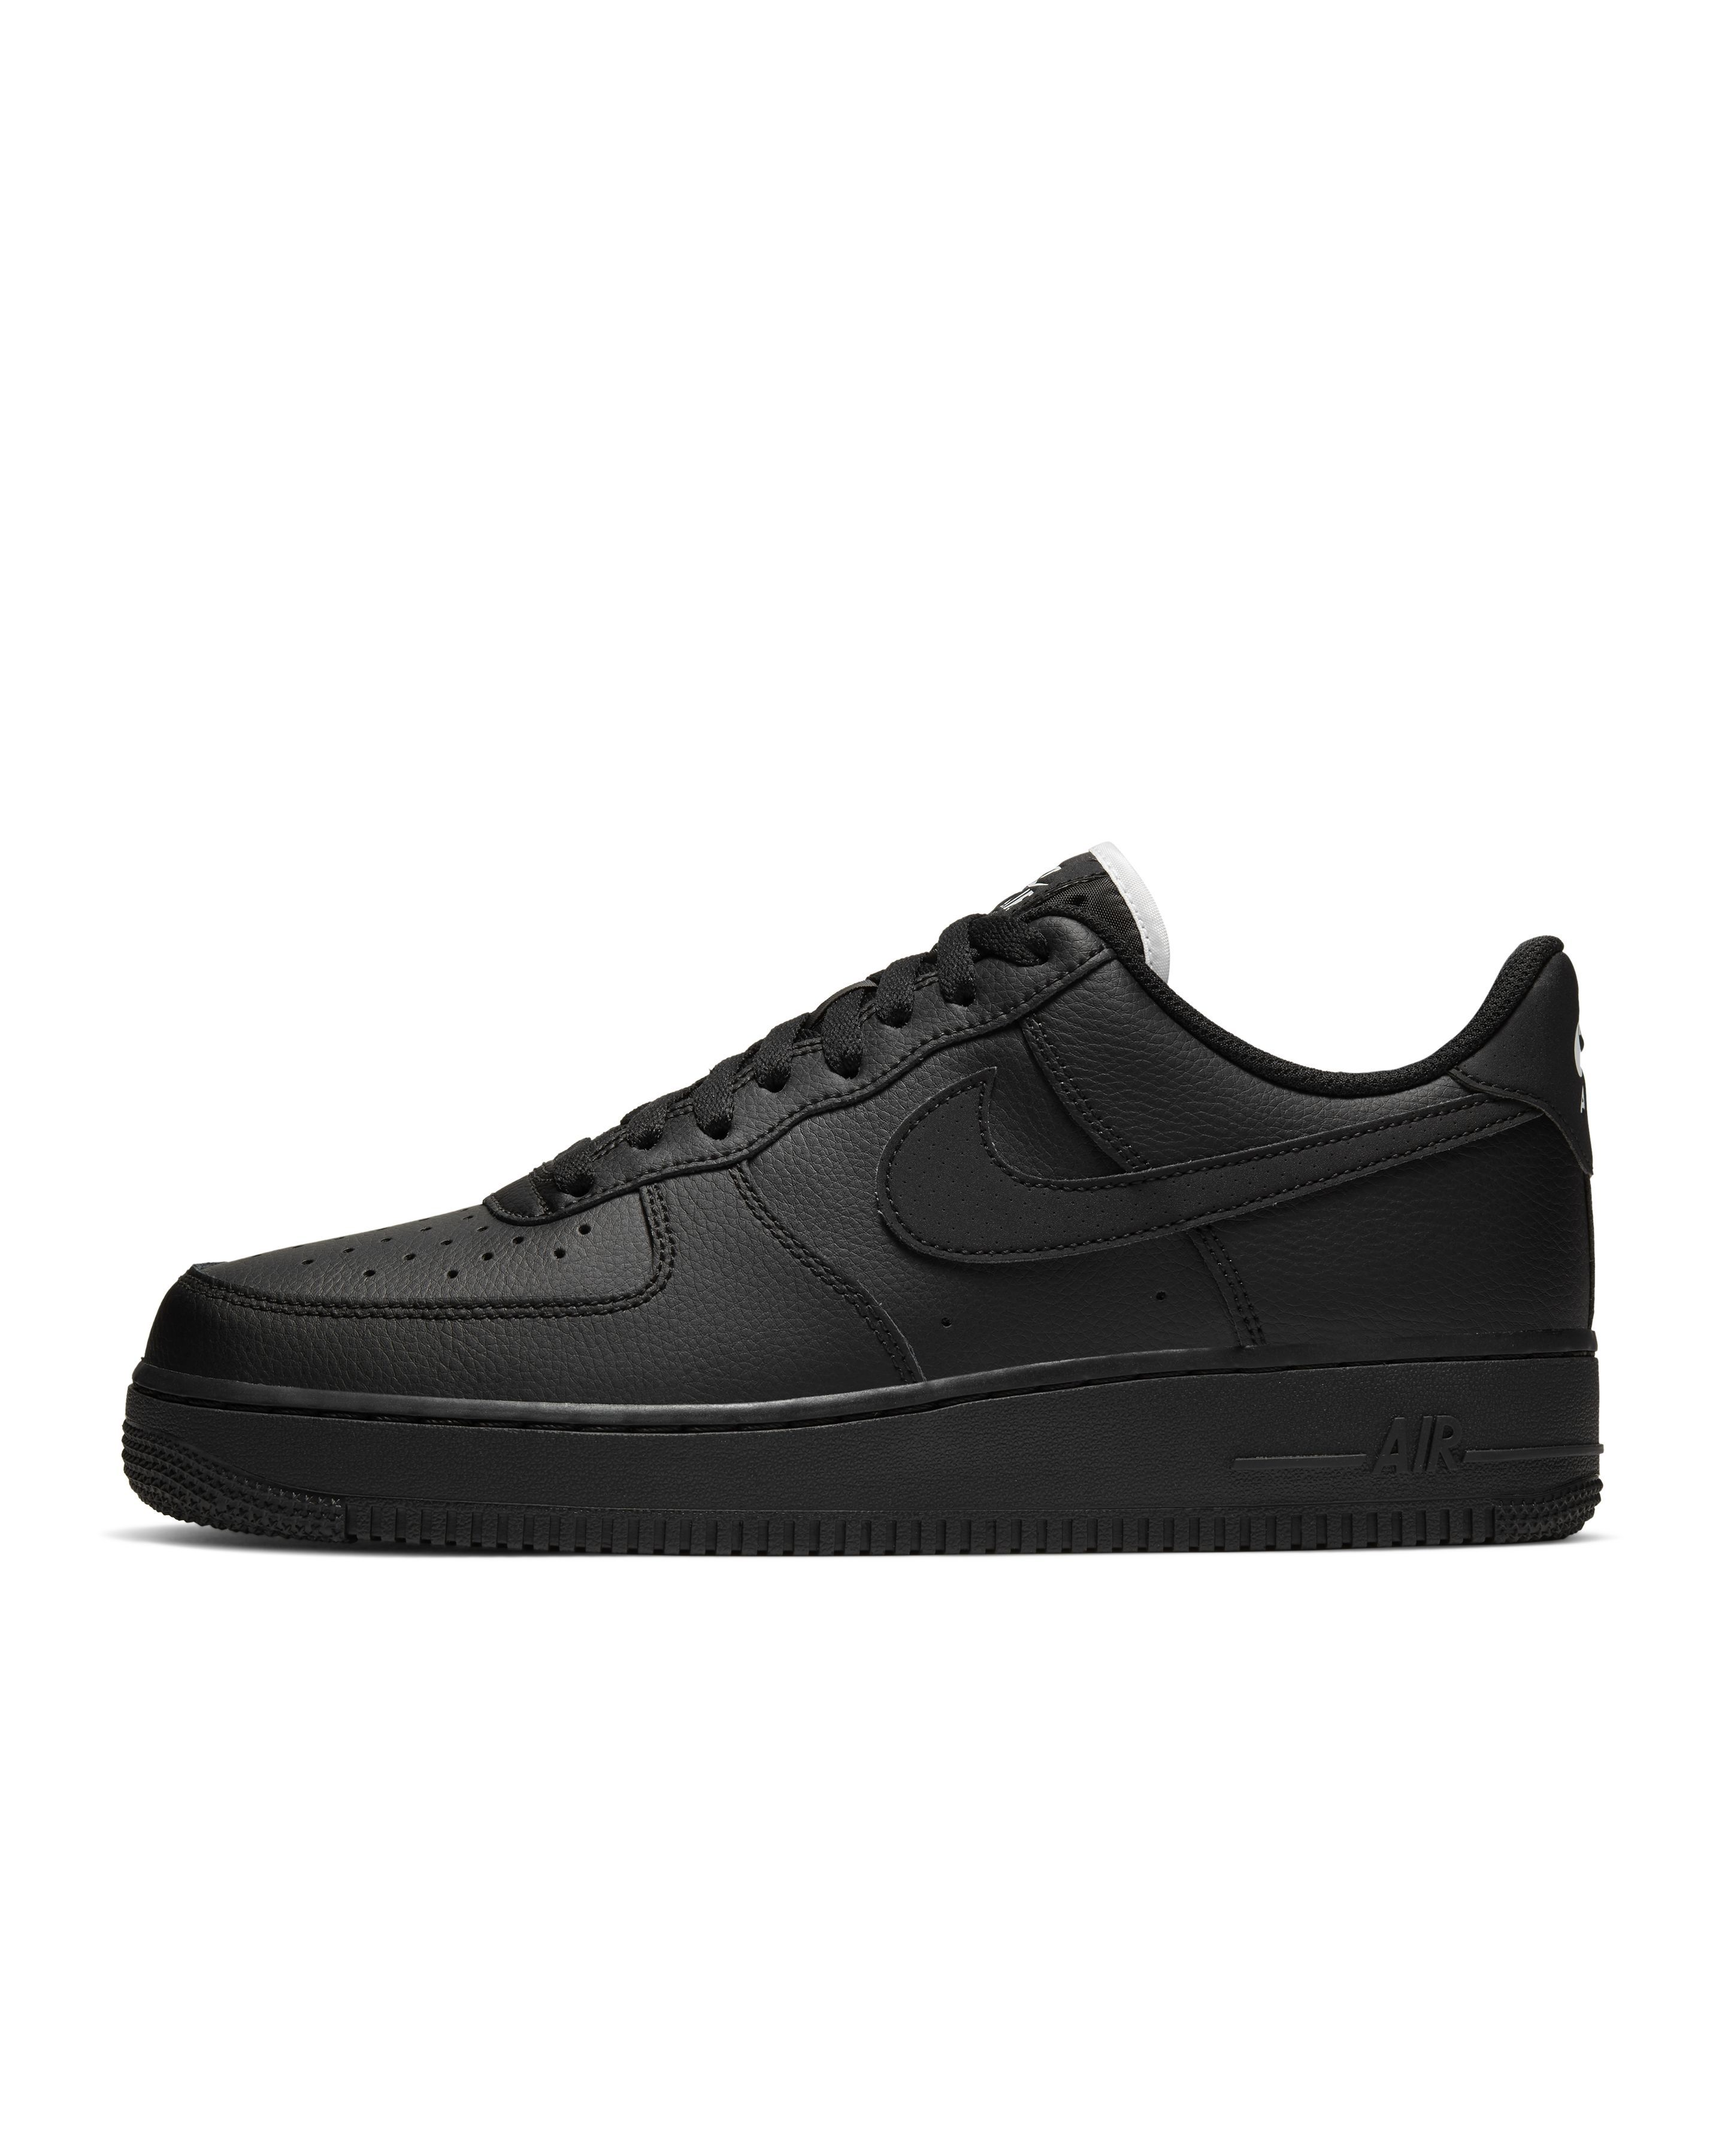 Stylish All-Black Shoes for Men